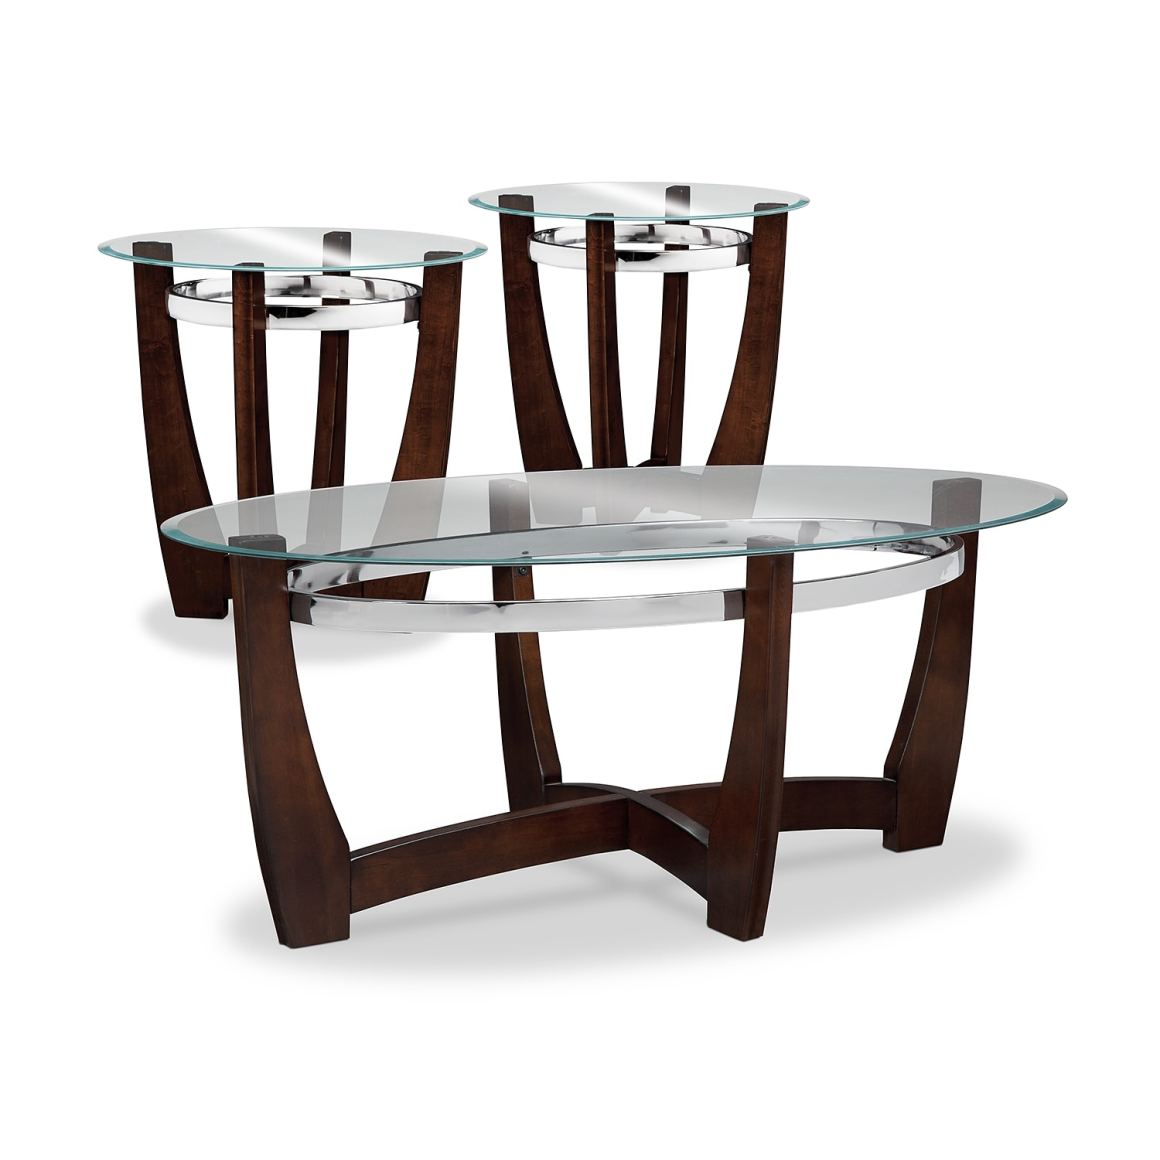 end tables | living room tables | value city furniture and mattresses